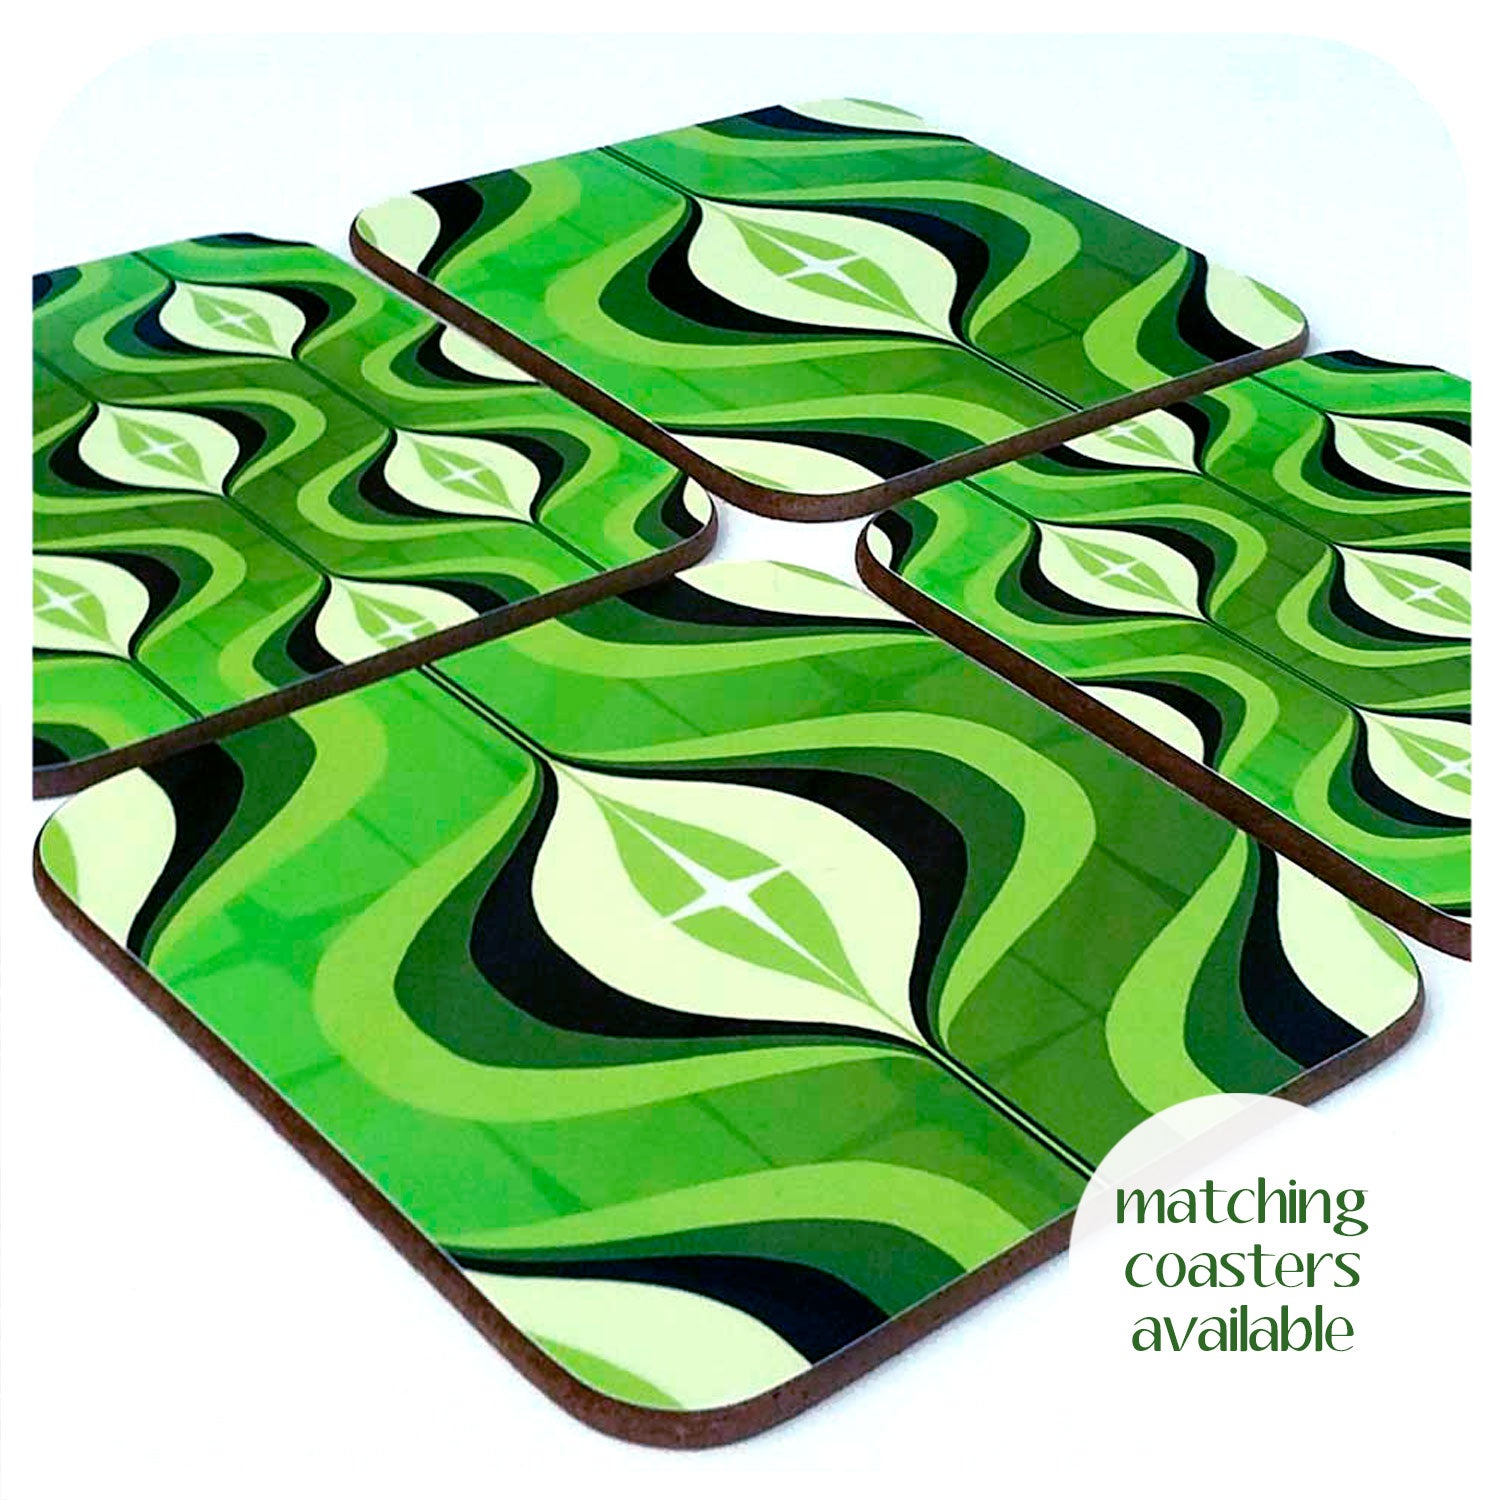 1970s Op Art Coasters in green available| The Inkabilly Emporium